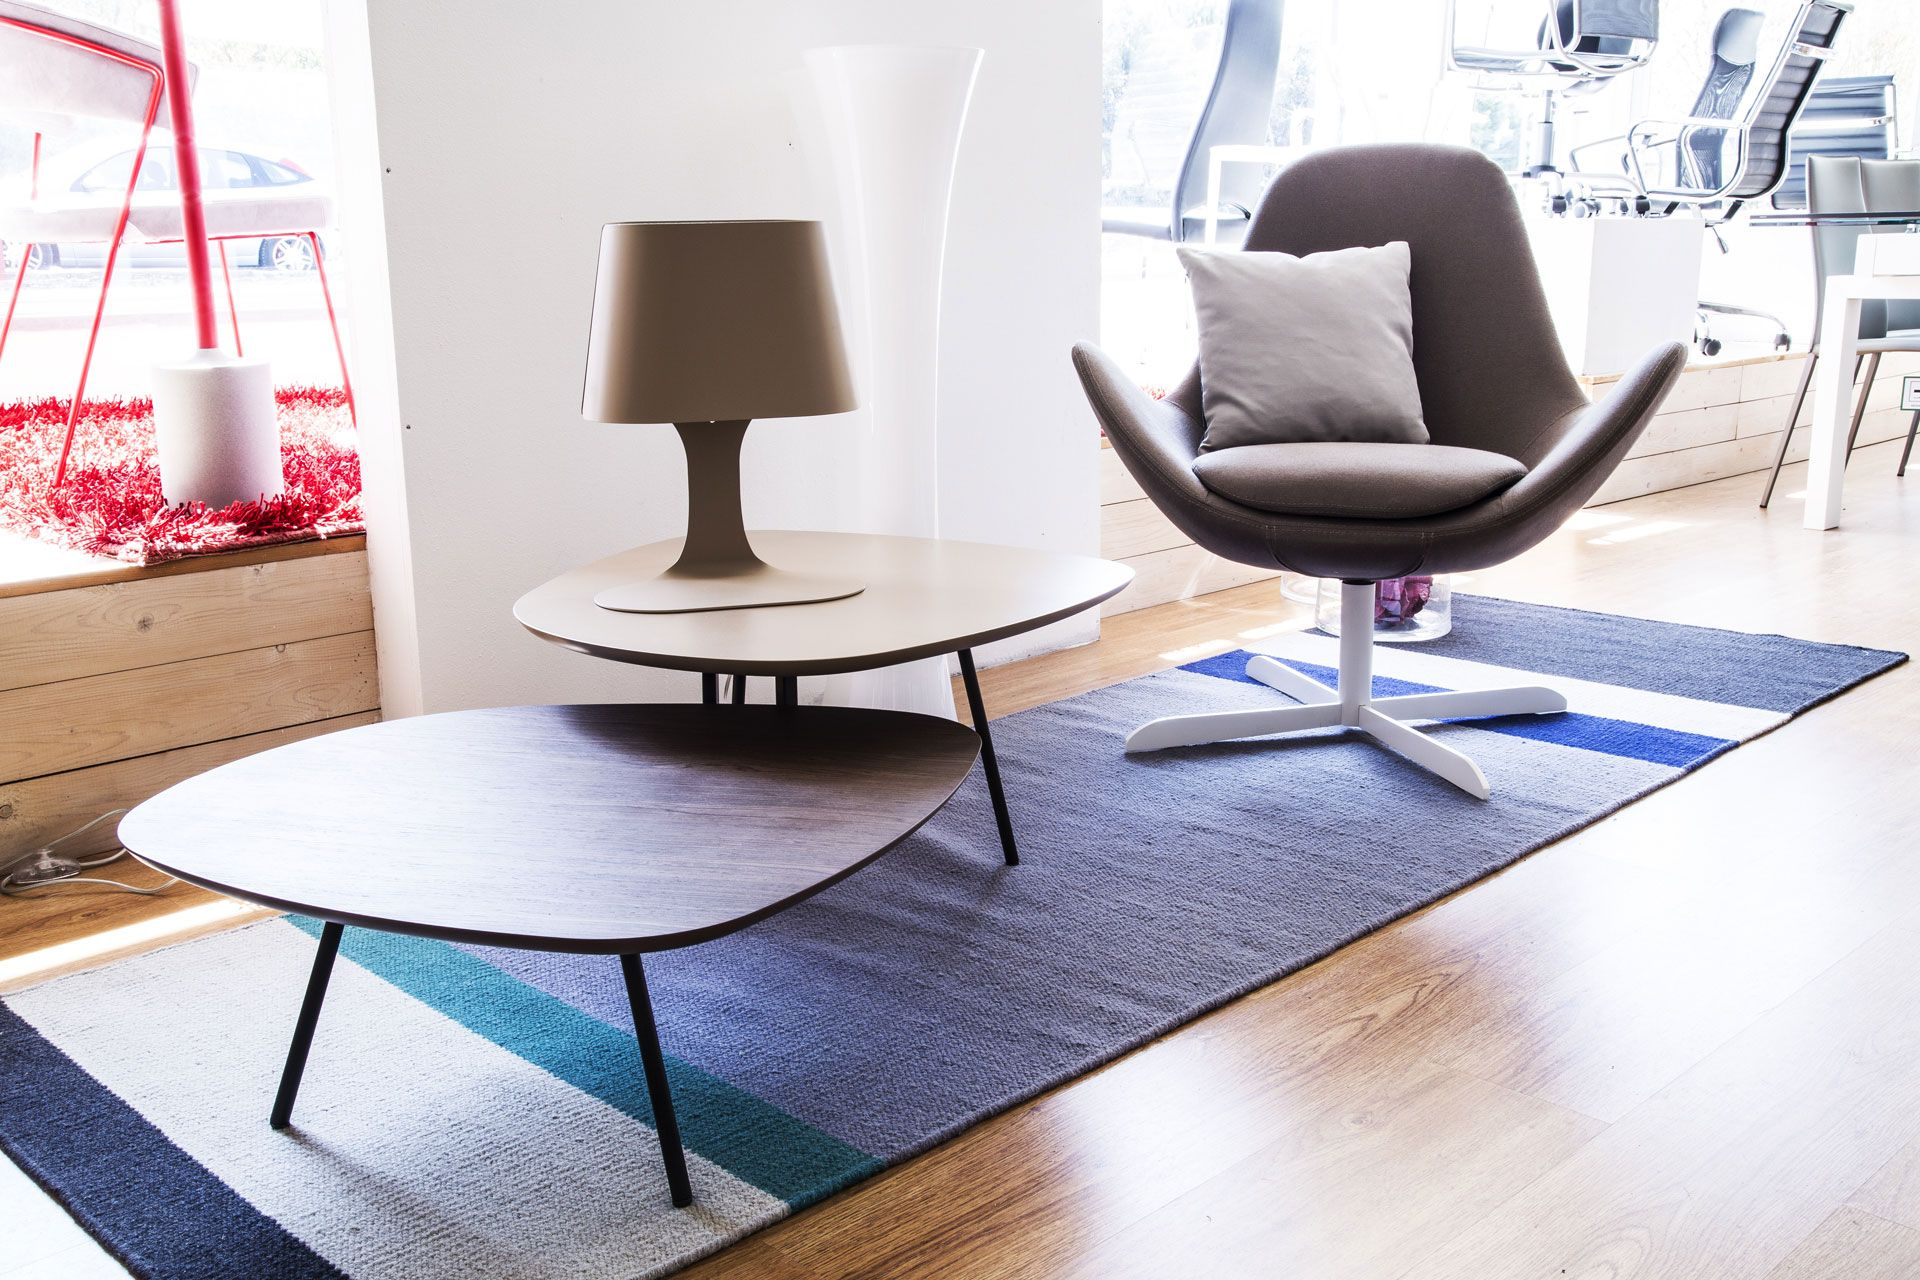 Calligaris Tweet Coffee Table With Double Toptweet Is The Quick Changing,